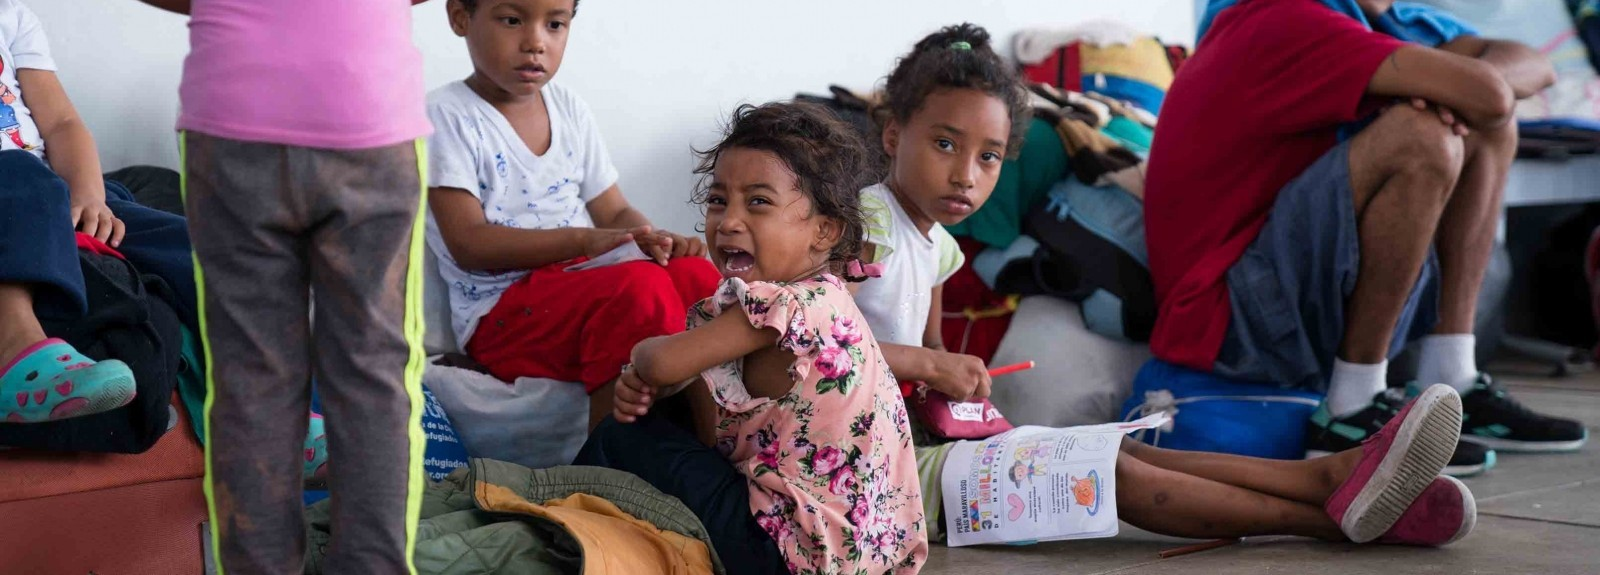 More than 3.5 million people who have left Venezuela since it descended into a political and economic crisis that has left essentials like food and basic hygiene products.